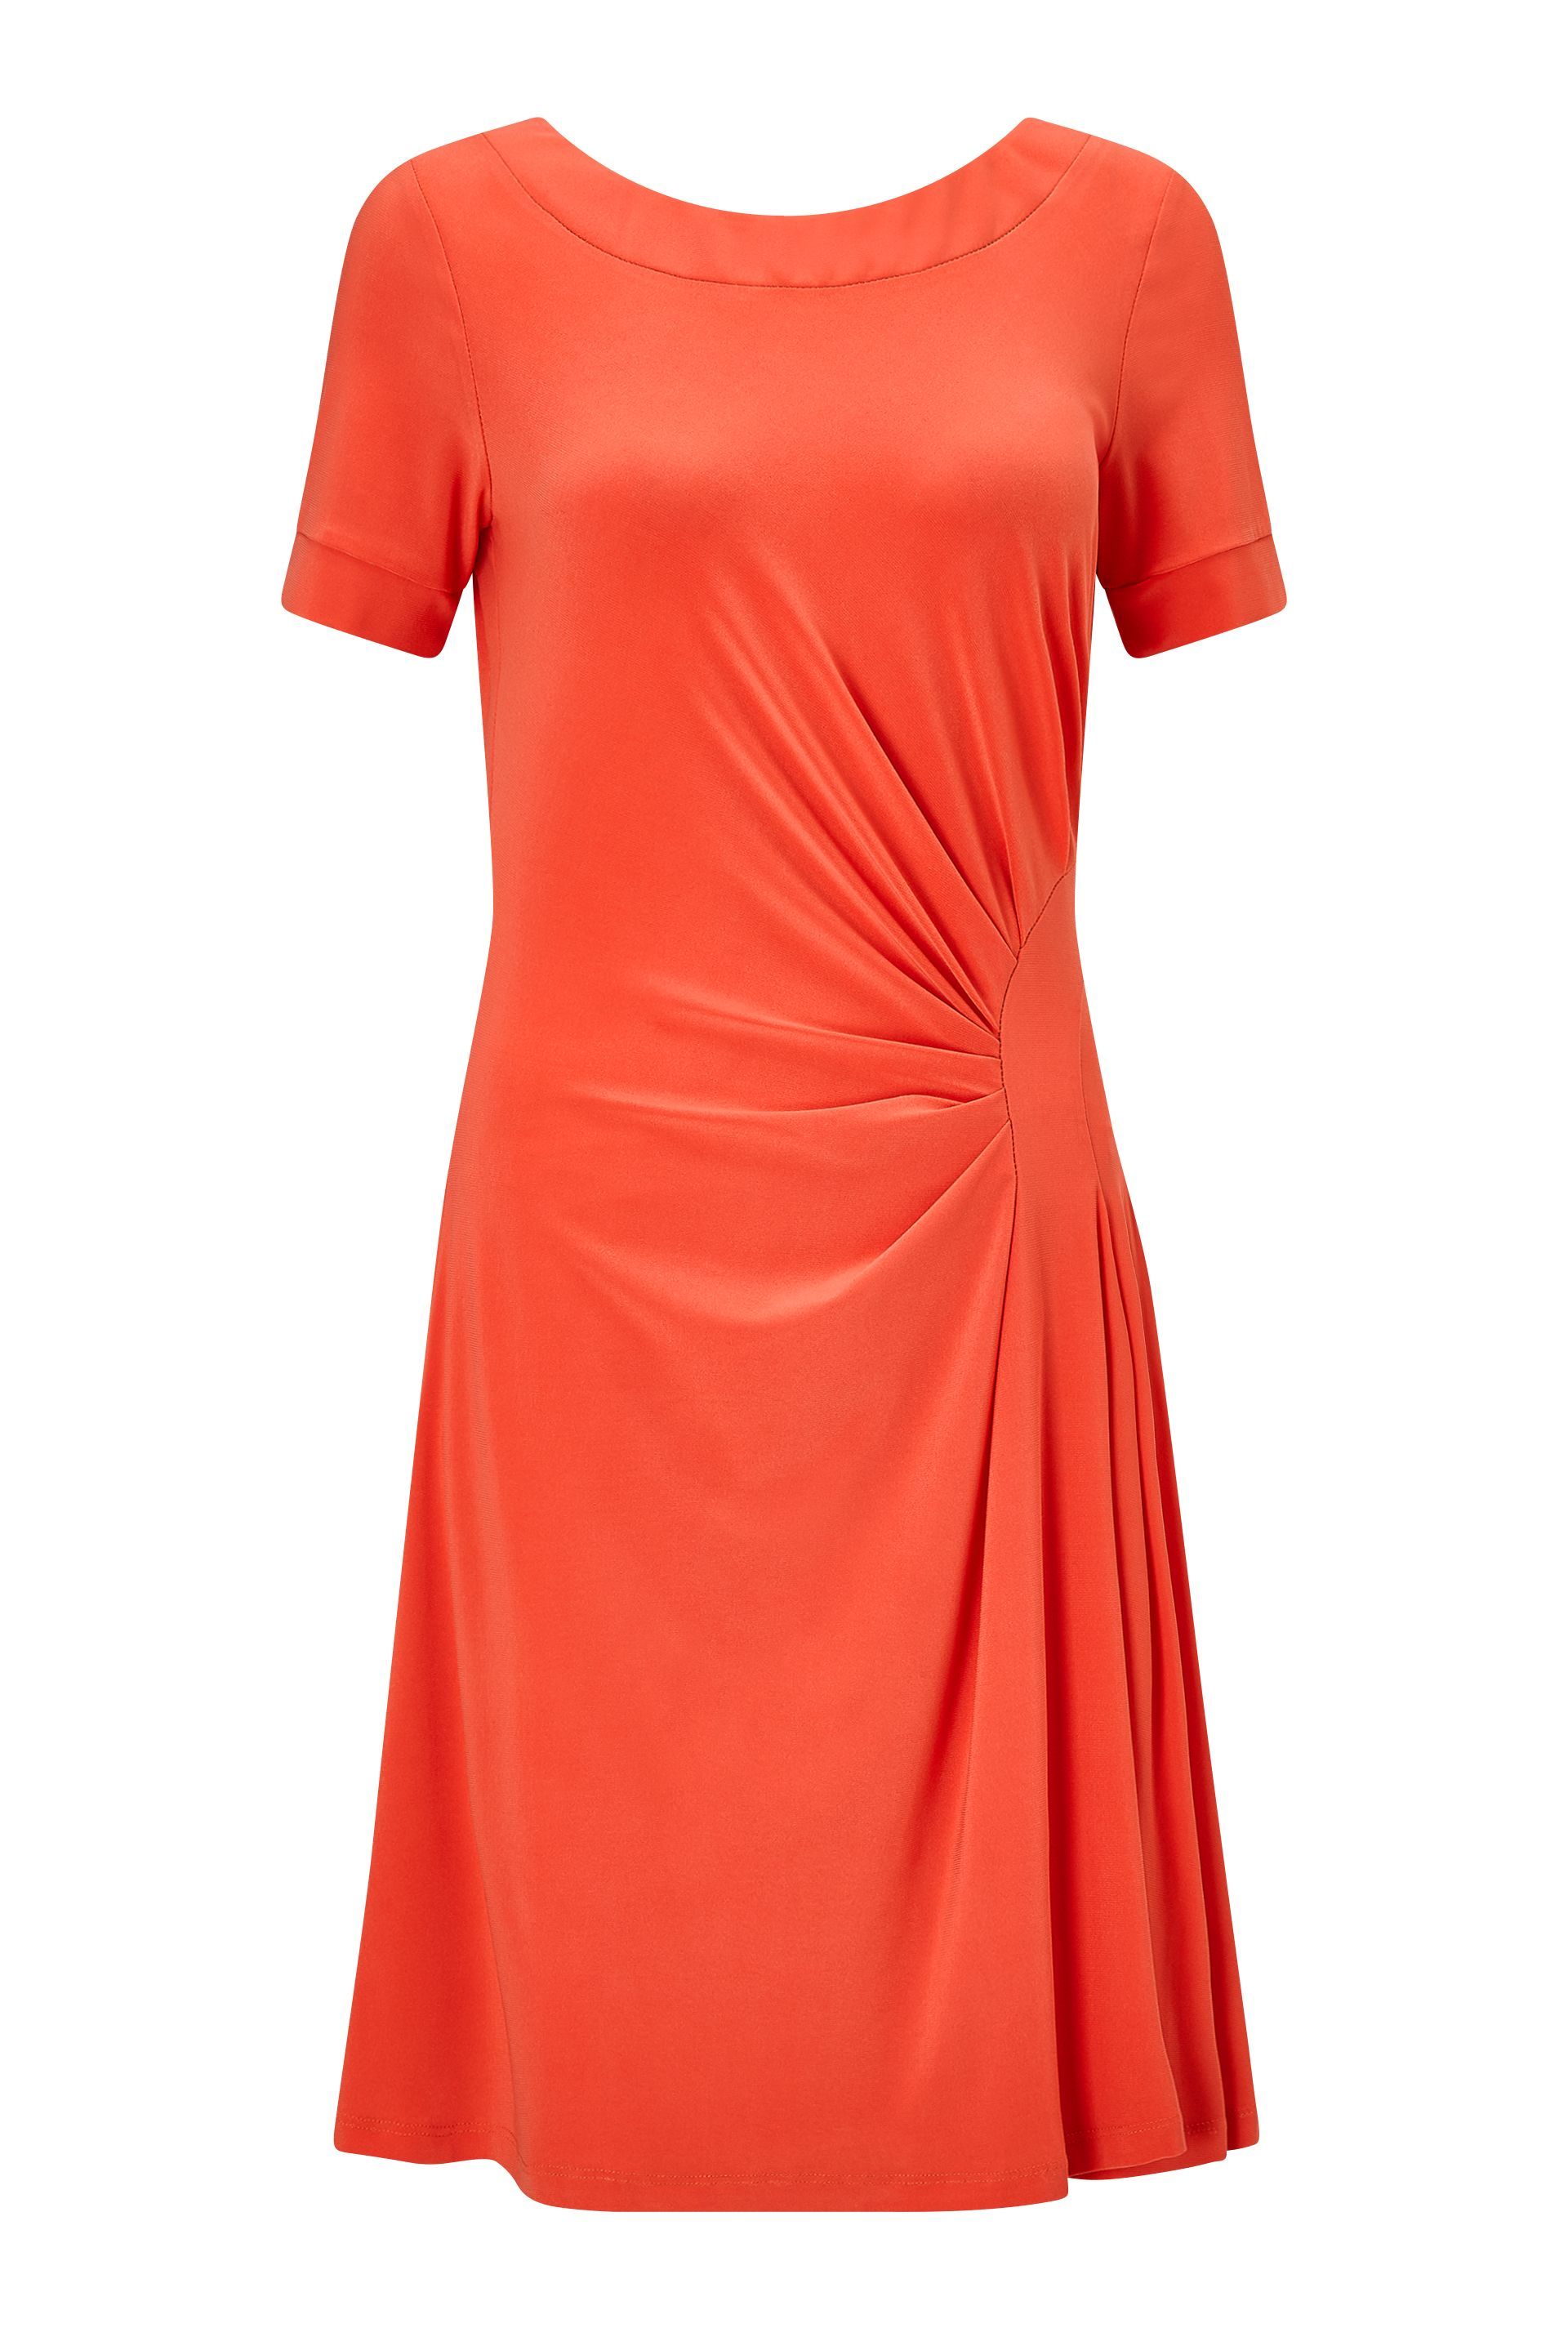 James Lakeland Back V Neck Dress, Orange